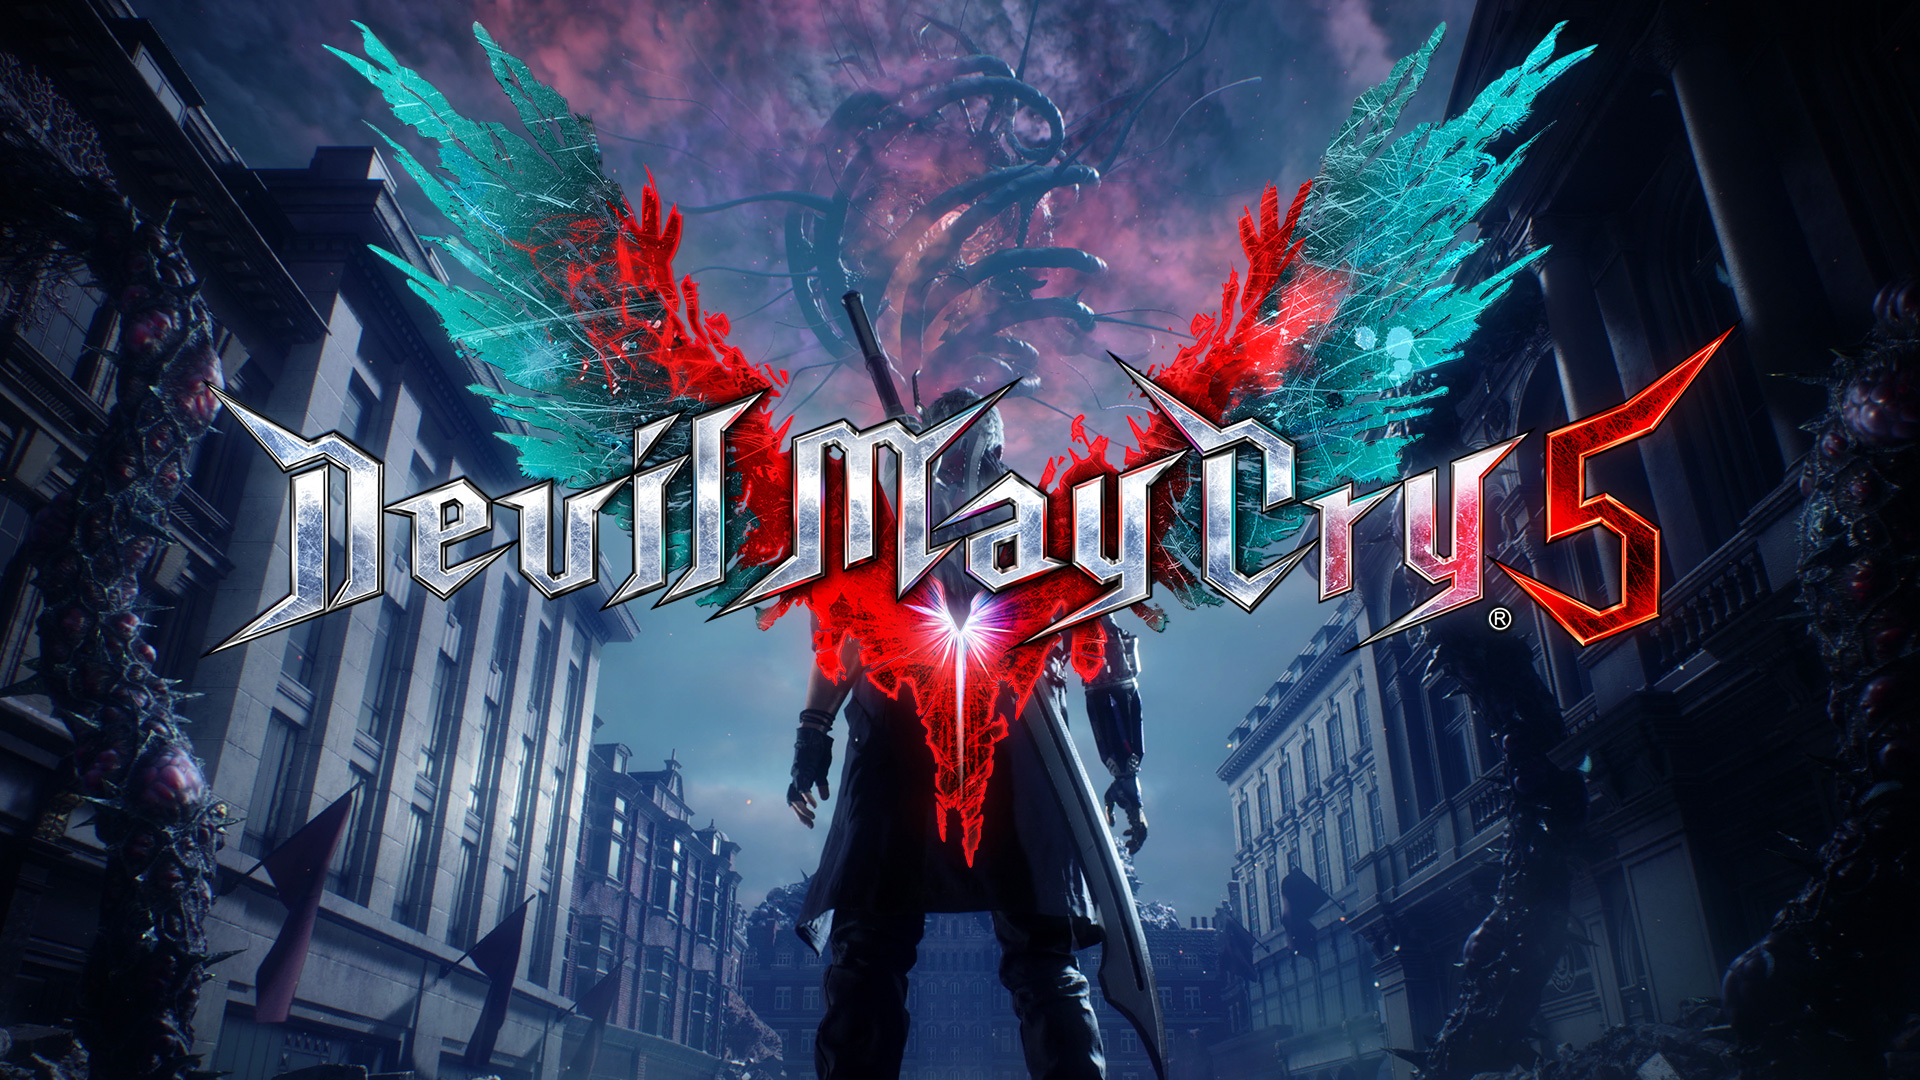 Devil May Cry 5 Interview - Discussing the Soundtrack with